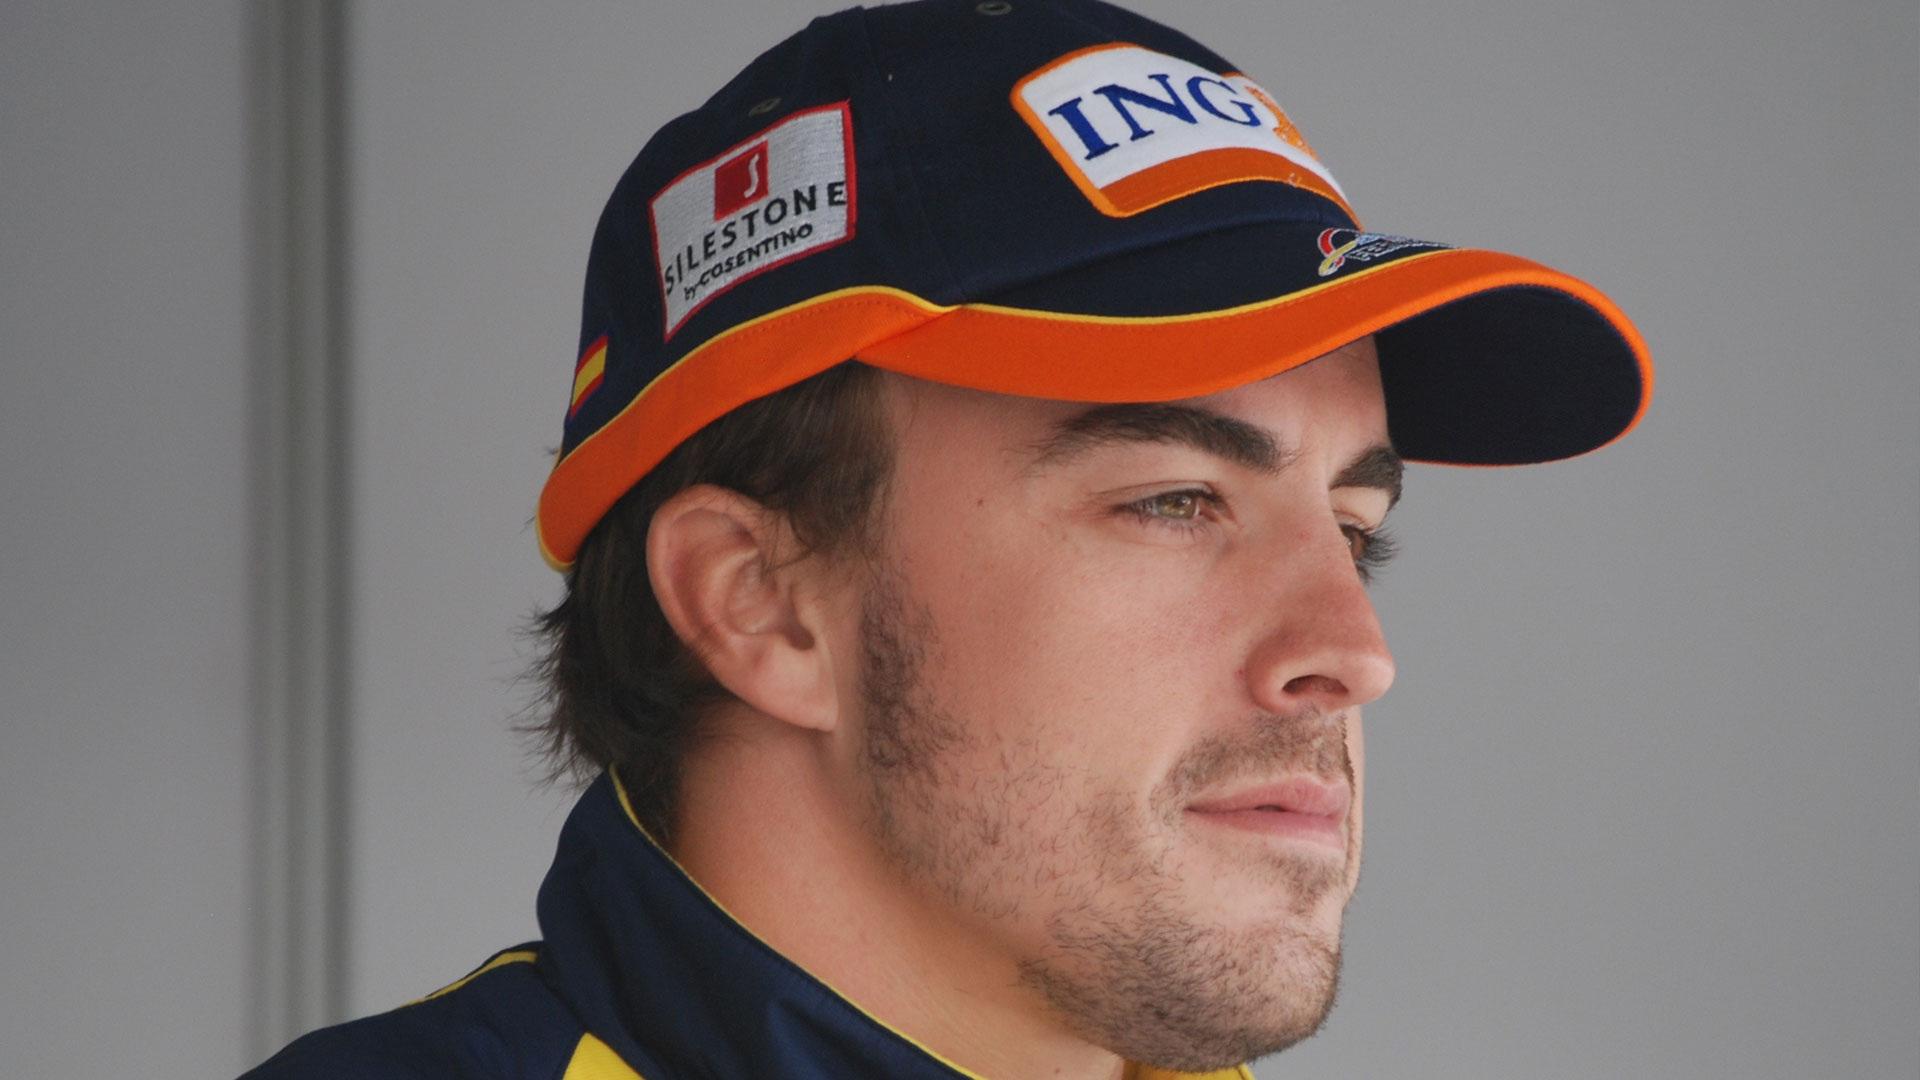 Alonso 30 años hero asset